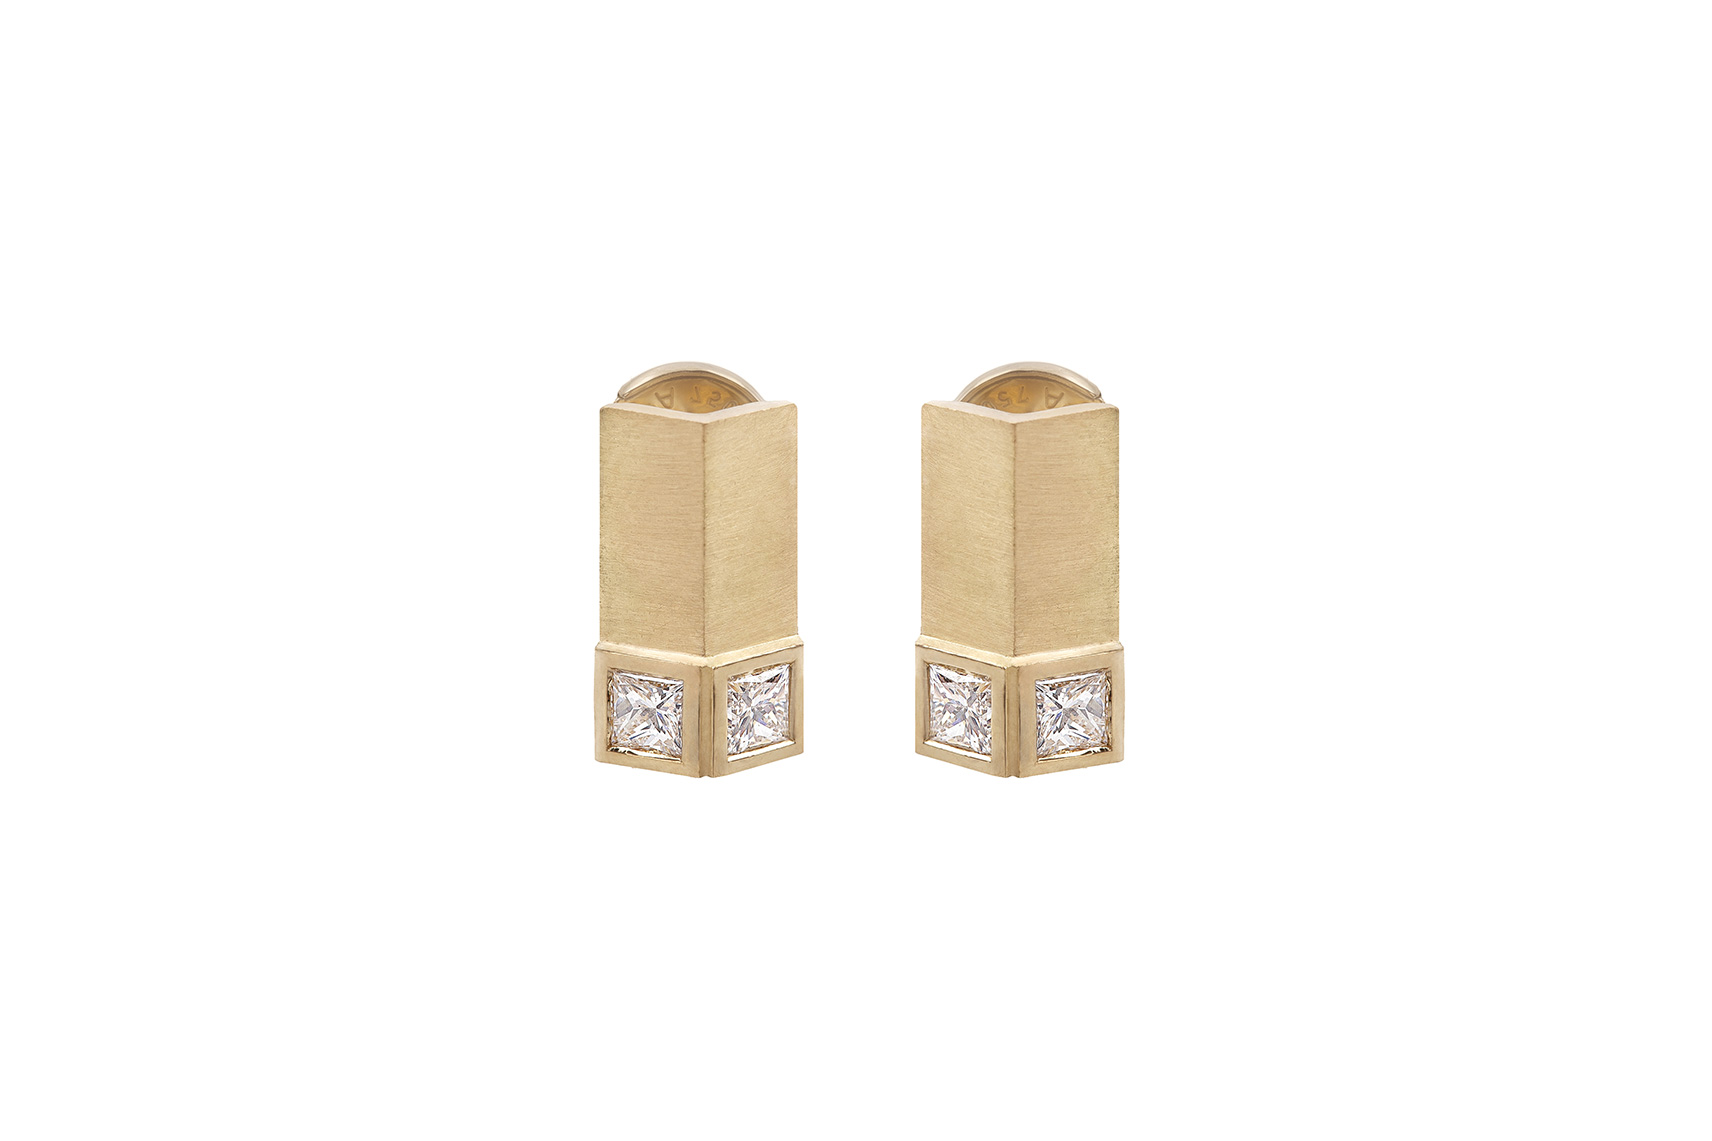 VERTICAL S EARRINGS YELLOW GOLD 18K PRINCESS 0.40 CT DIAMOND